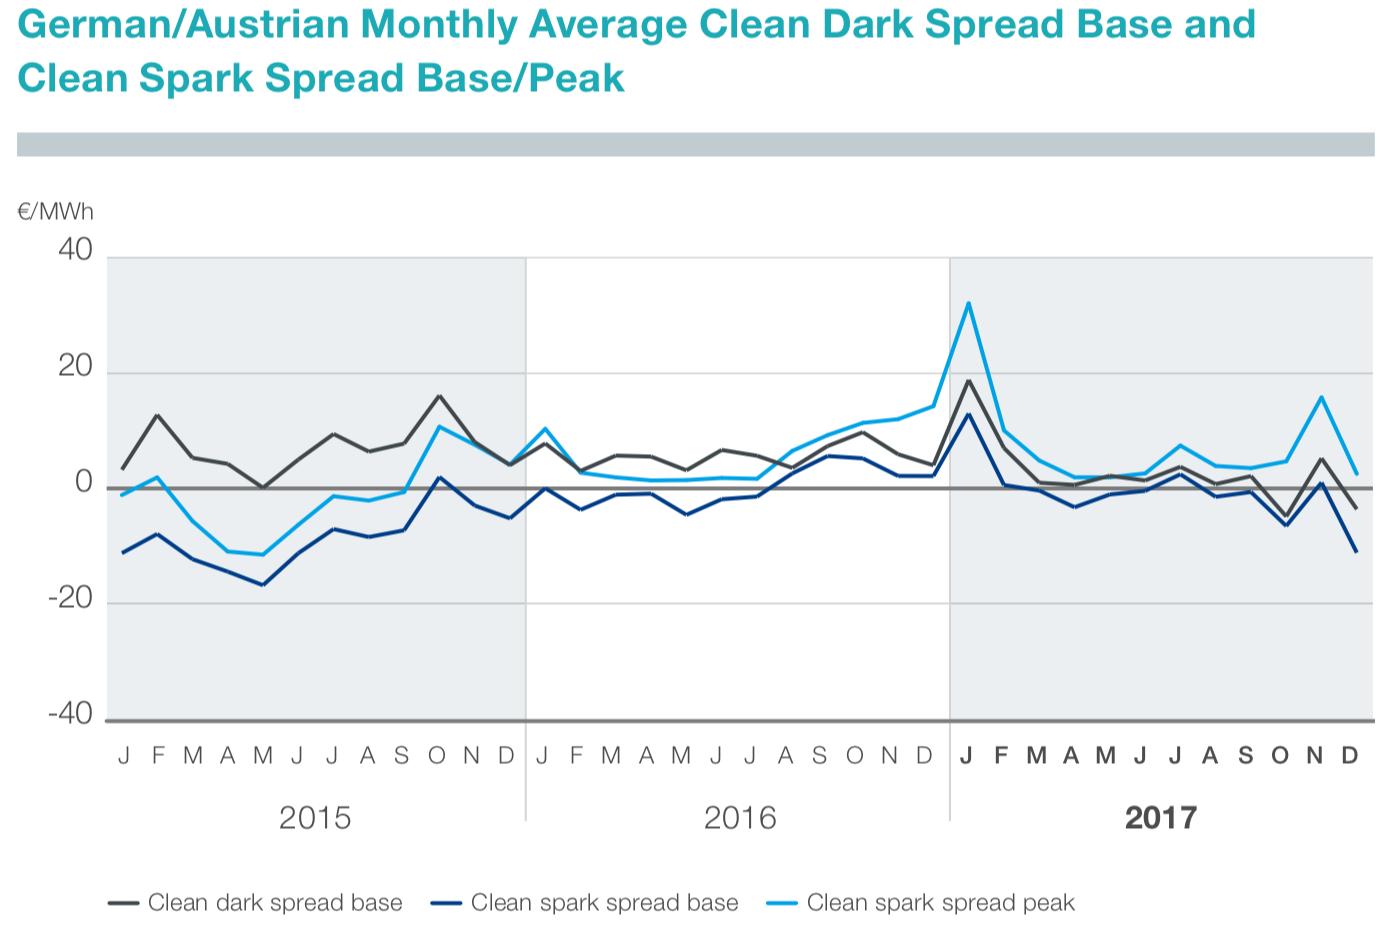 Figure 5: Monthly average clean dark spread base and clean spark spread base/peak in Germany/ Austria (Tennet 2018)